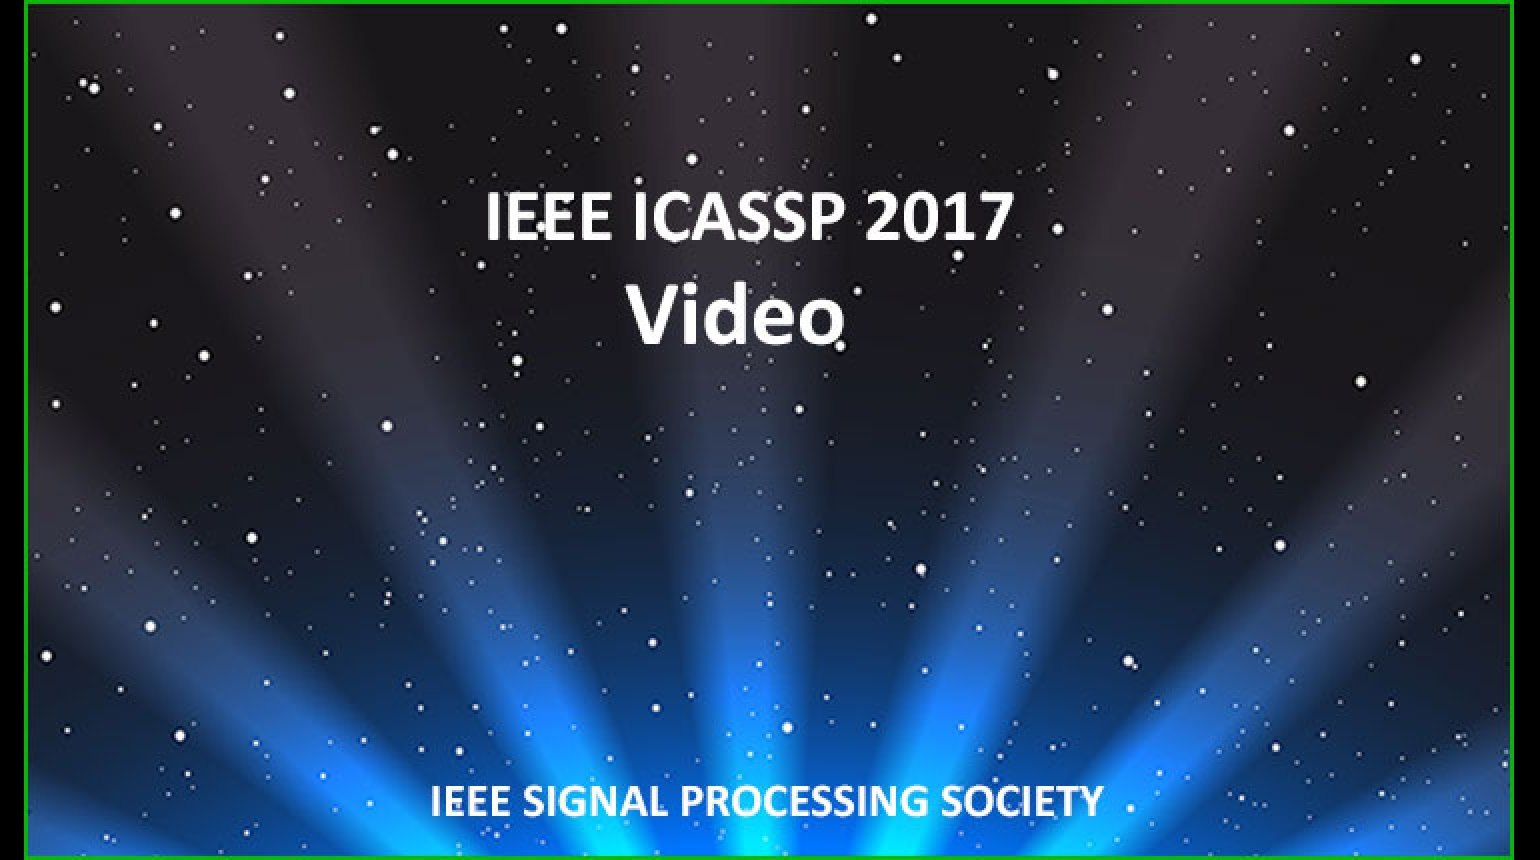 IEEE ICASSP 2017-Tutorial 8 Multimodal Signal Processing, Saliency and Summarization